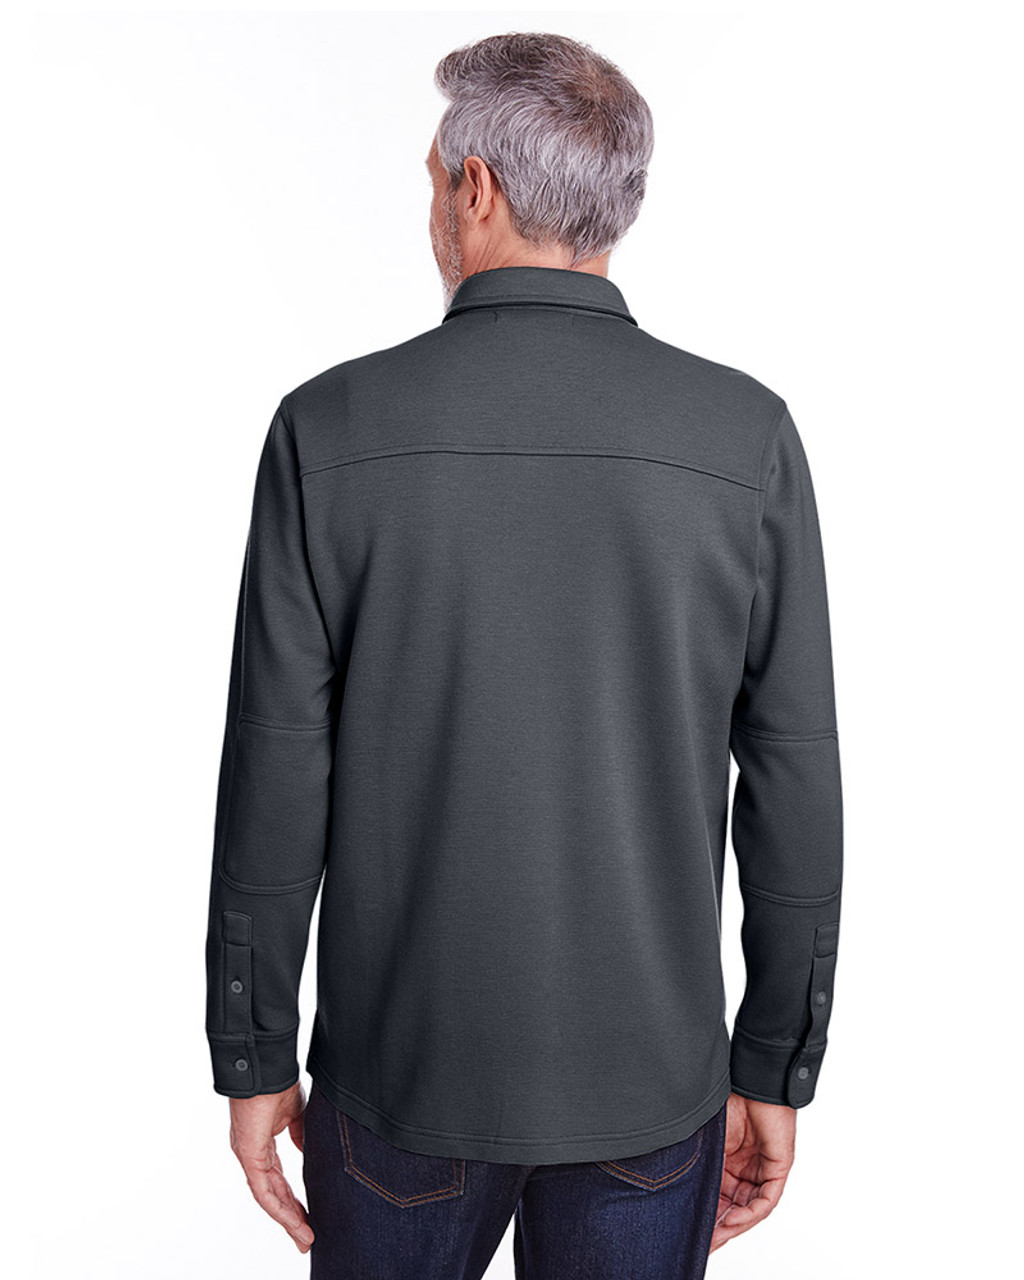 Dark Charcoal - back, M708 Harriton Adult StainBloc™ Pique Fleece Shirt-Jacket | Blankclothing.ca